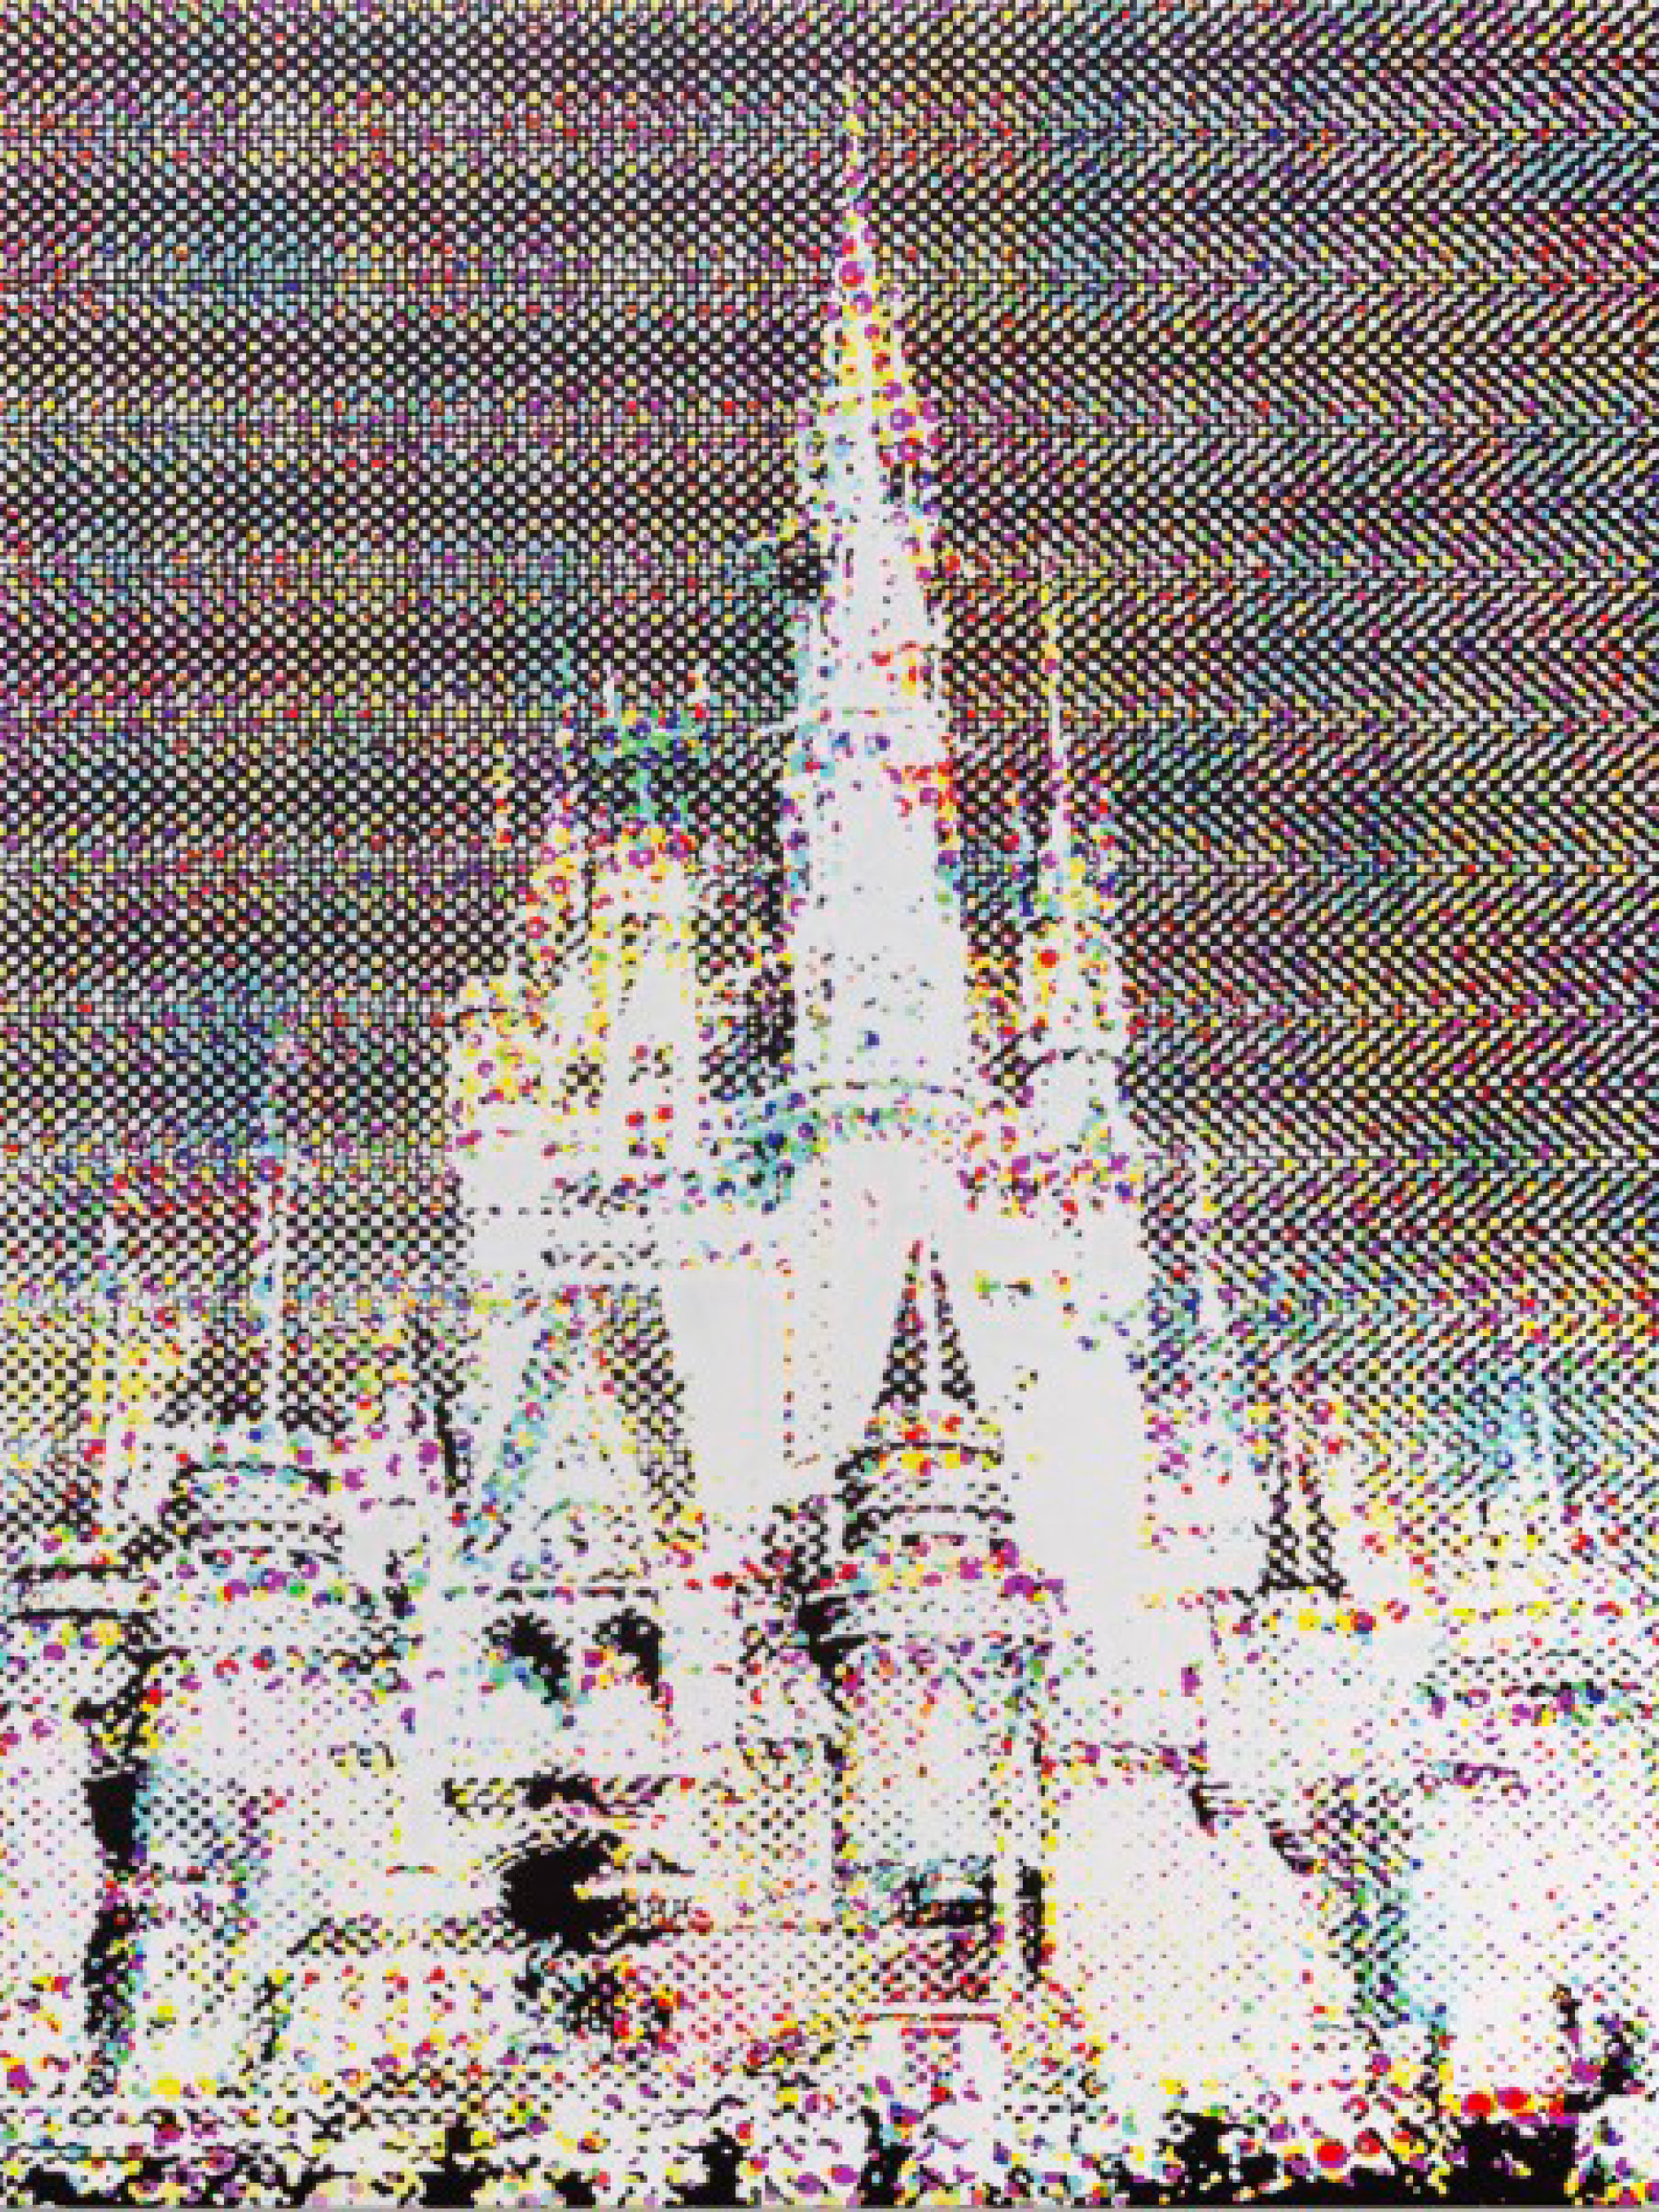 Disney Castle,The Summer of Love (2018) - Shelter Serra41 x 34 inchesArchival ink/paint on canvas